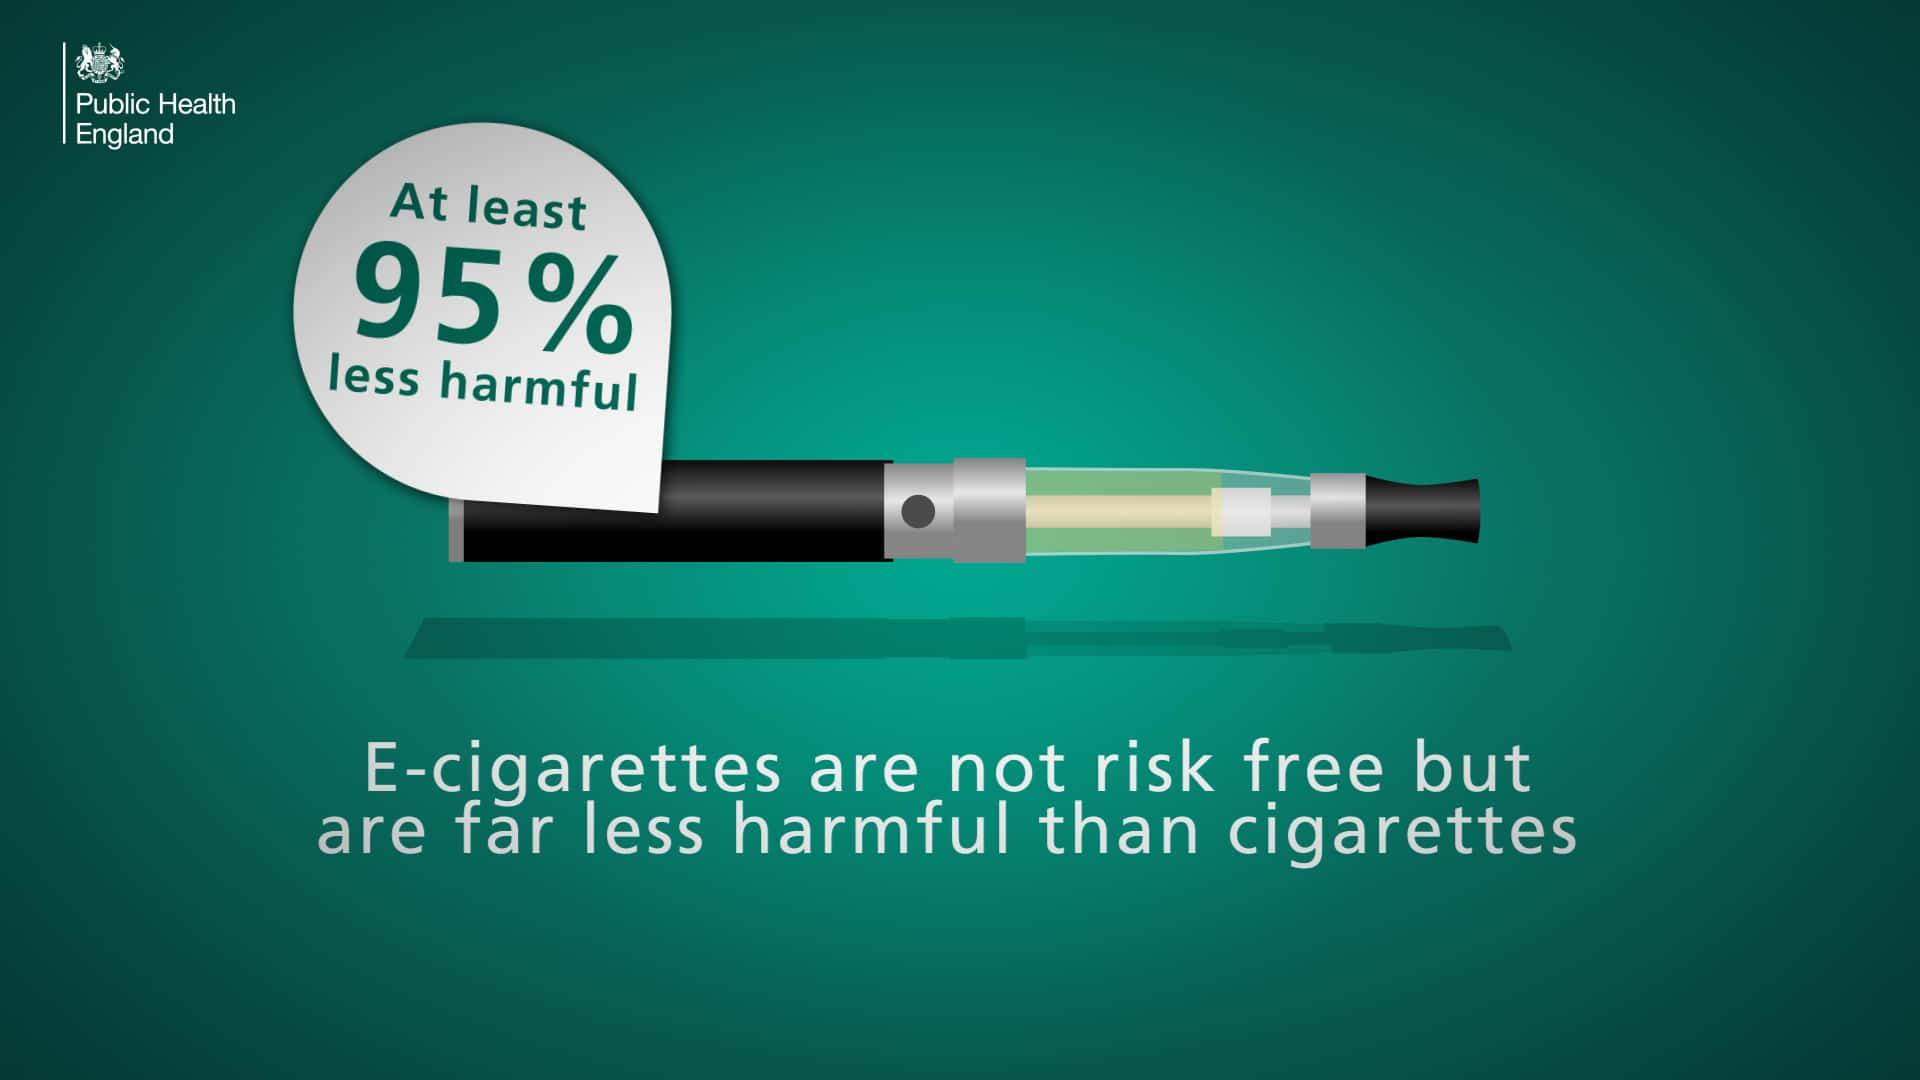 Clearing up some myths around e-cigarettes - Public health matters